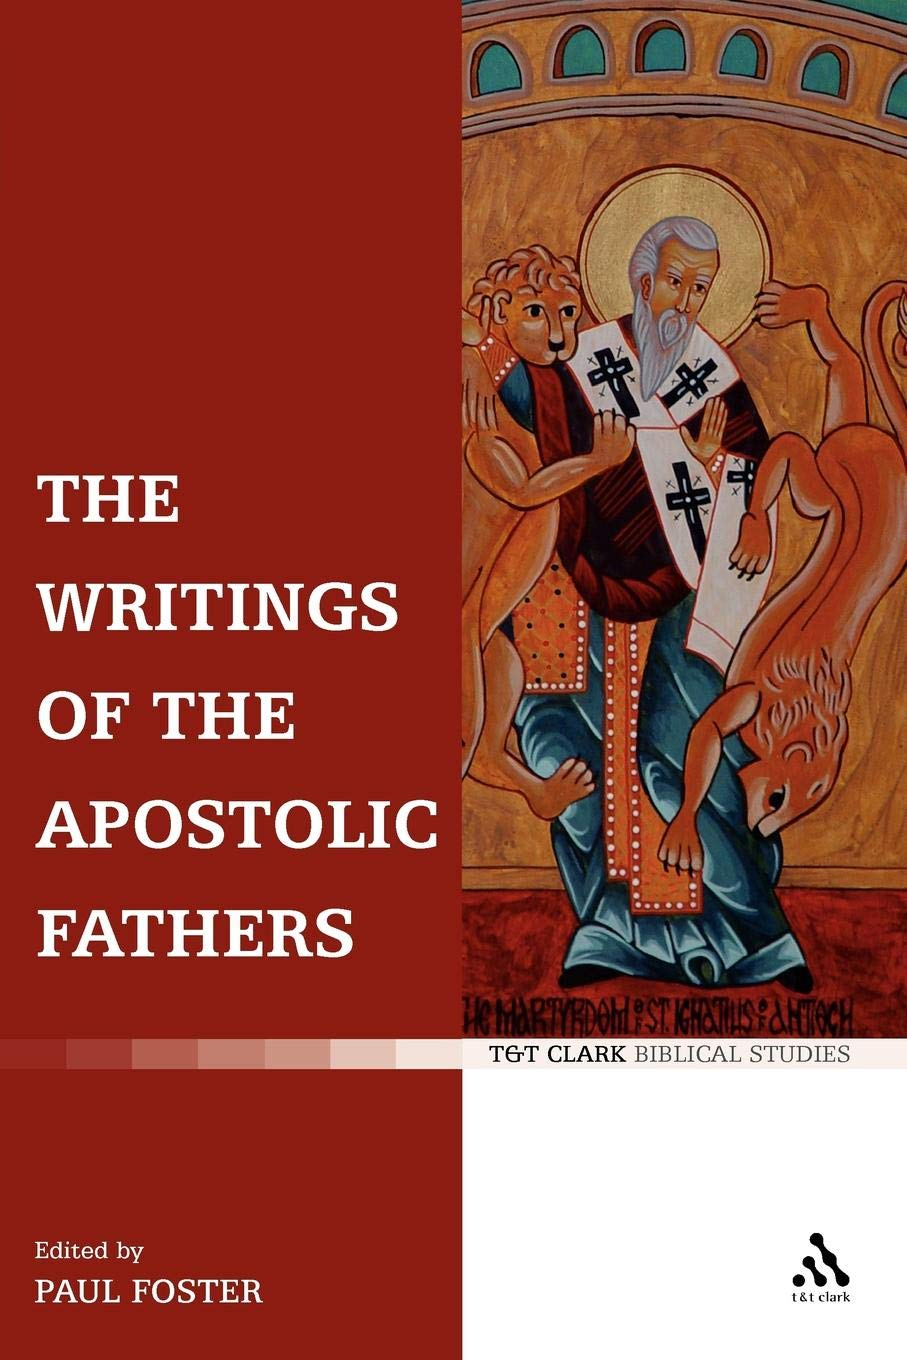 The Writings of the Apostolic Fathers (T&t Clark Biblical